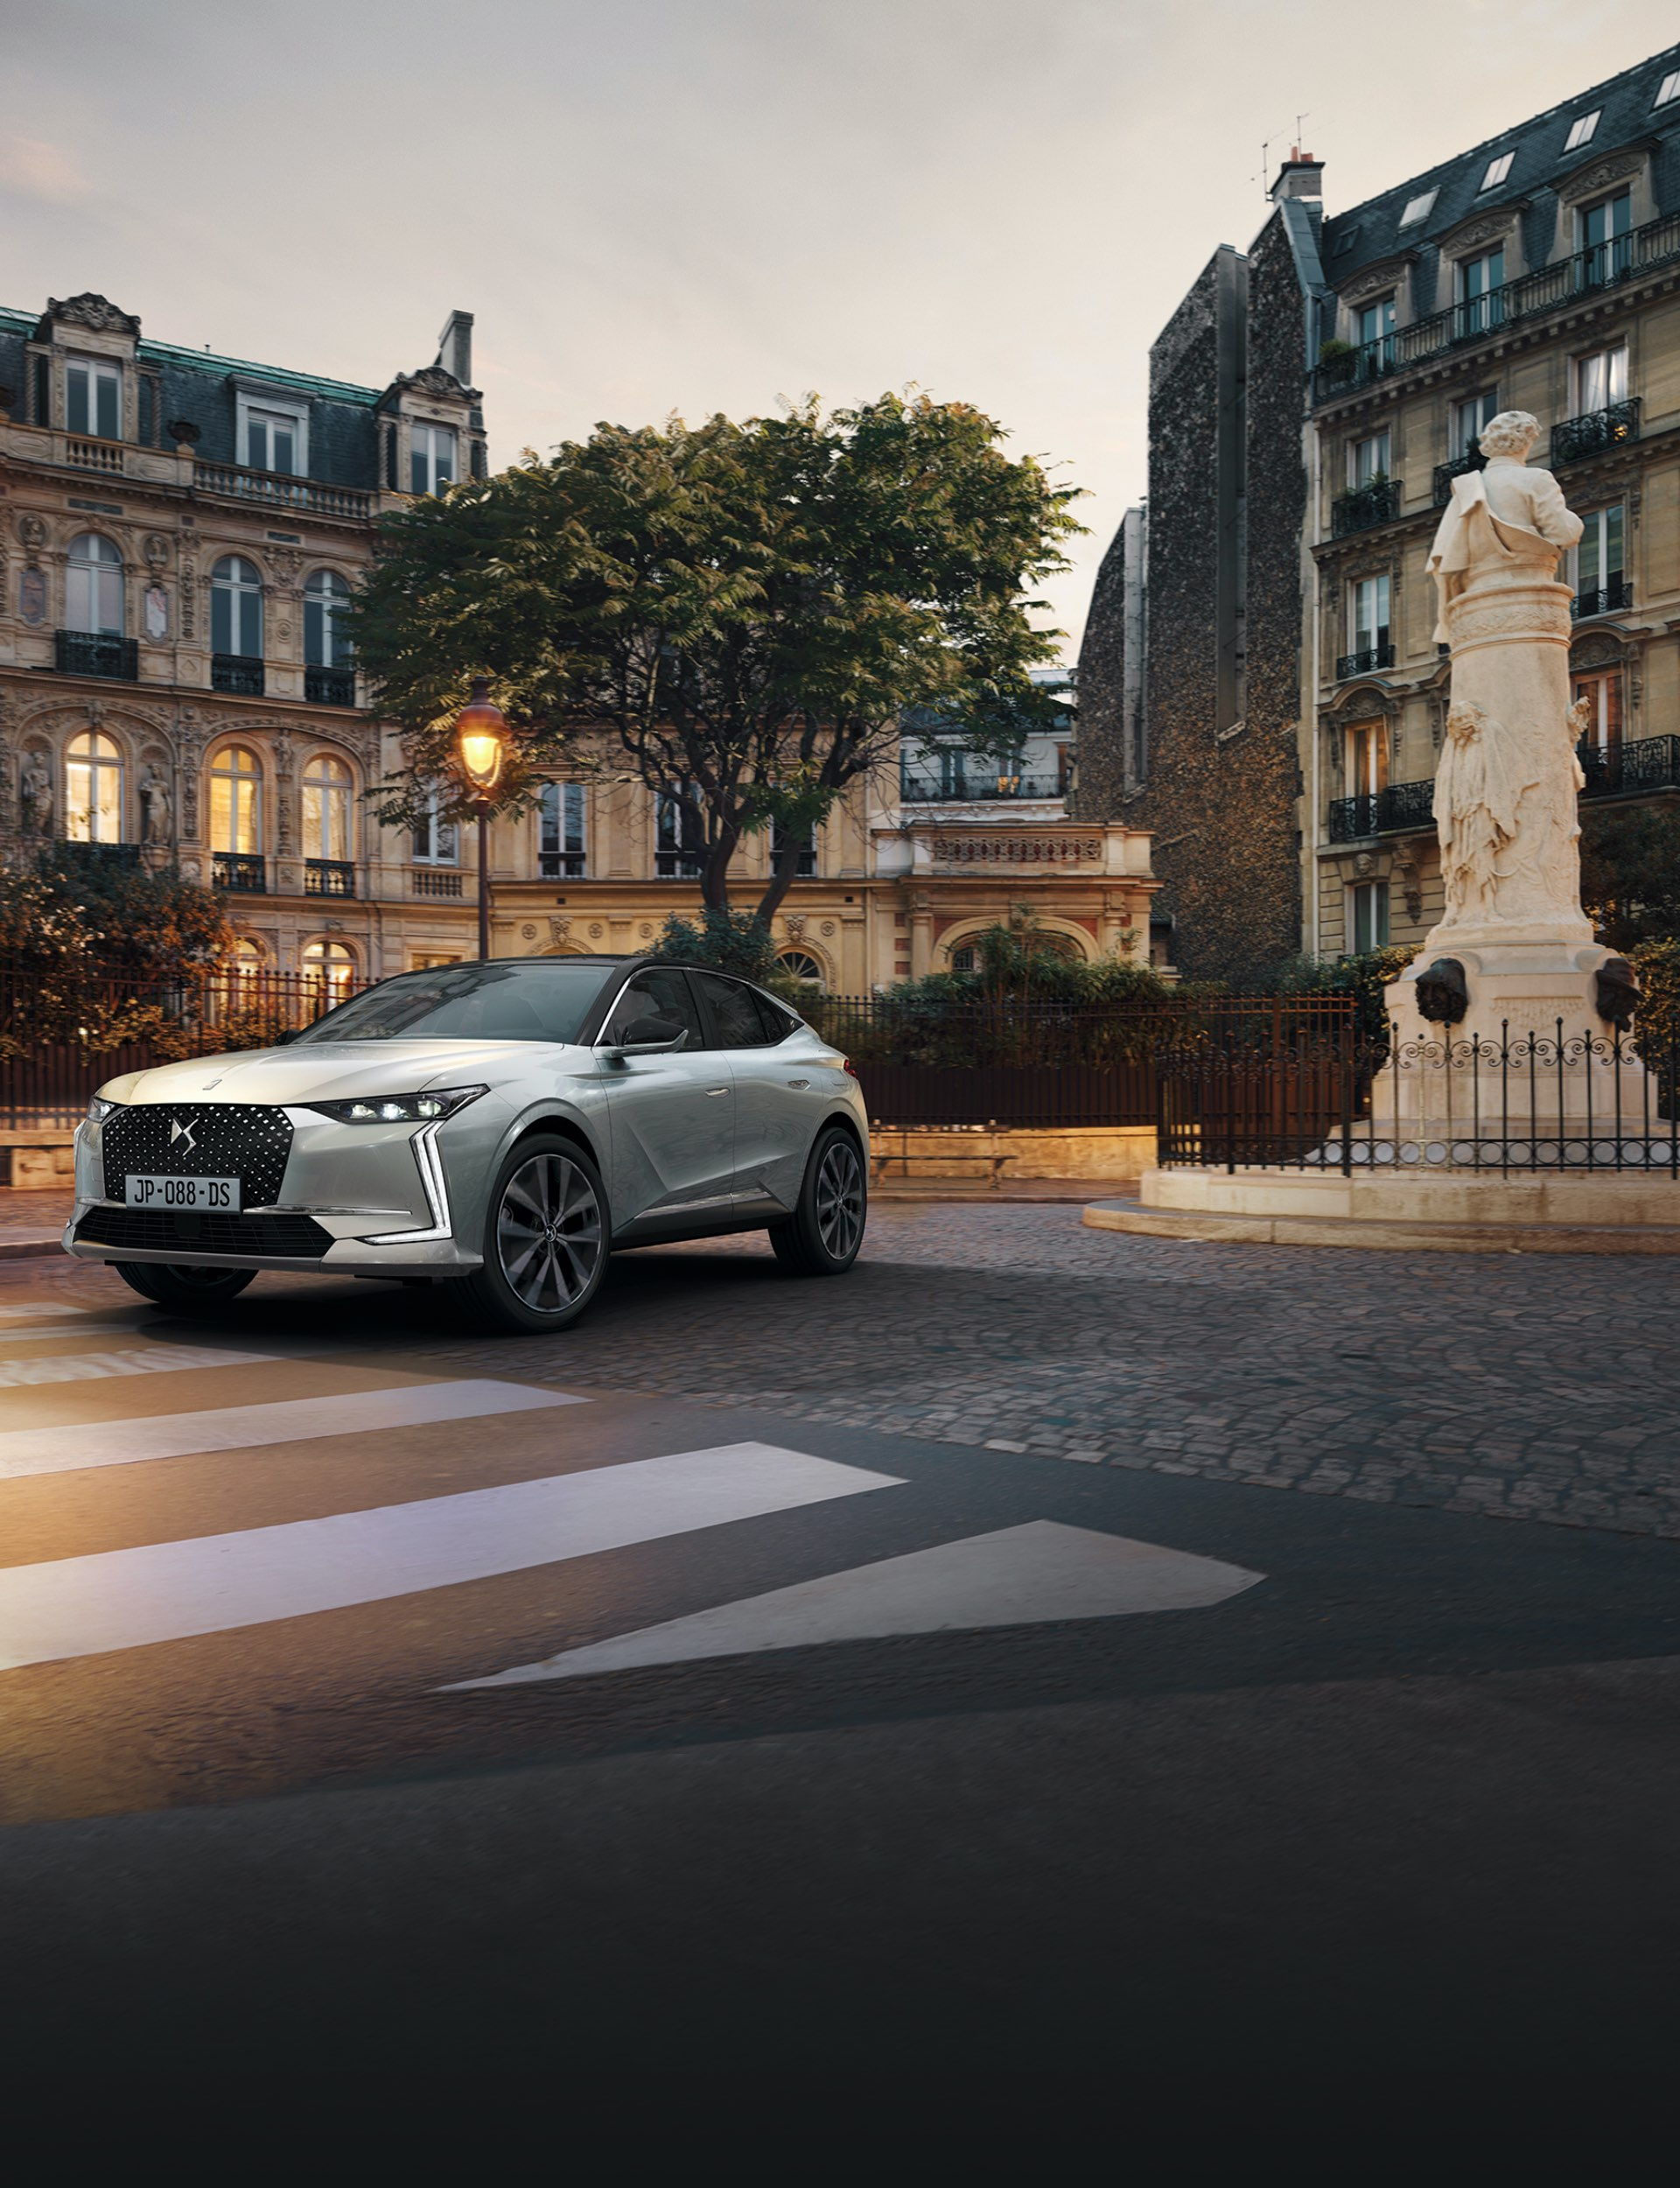 DS Automobiles steers smoother journeys with TomTom navigation